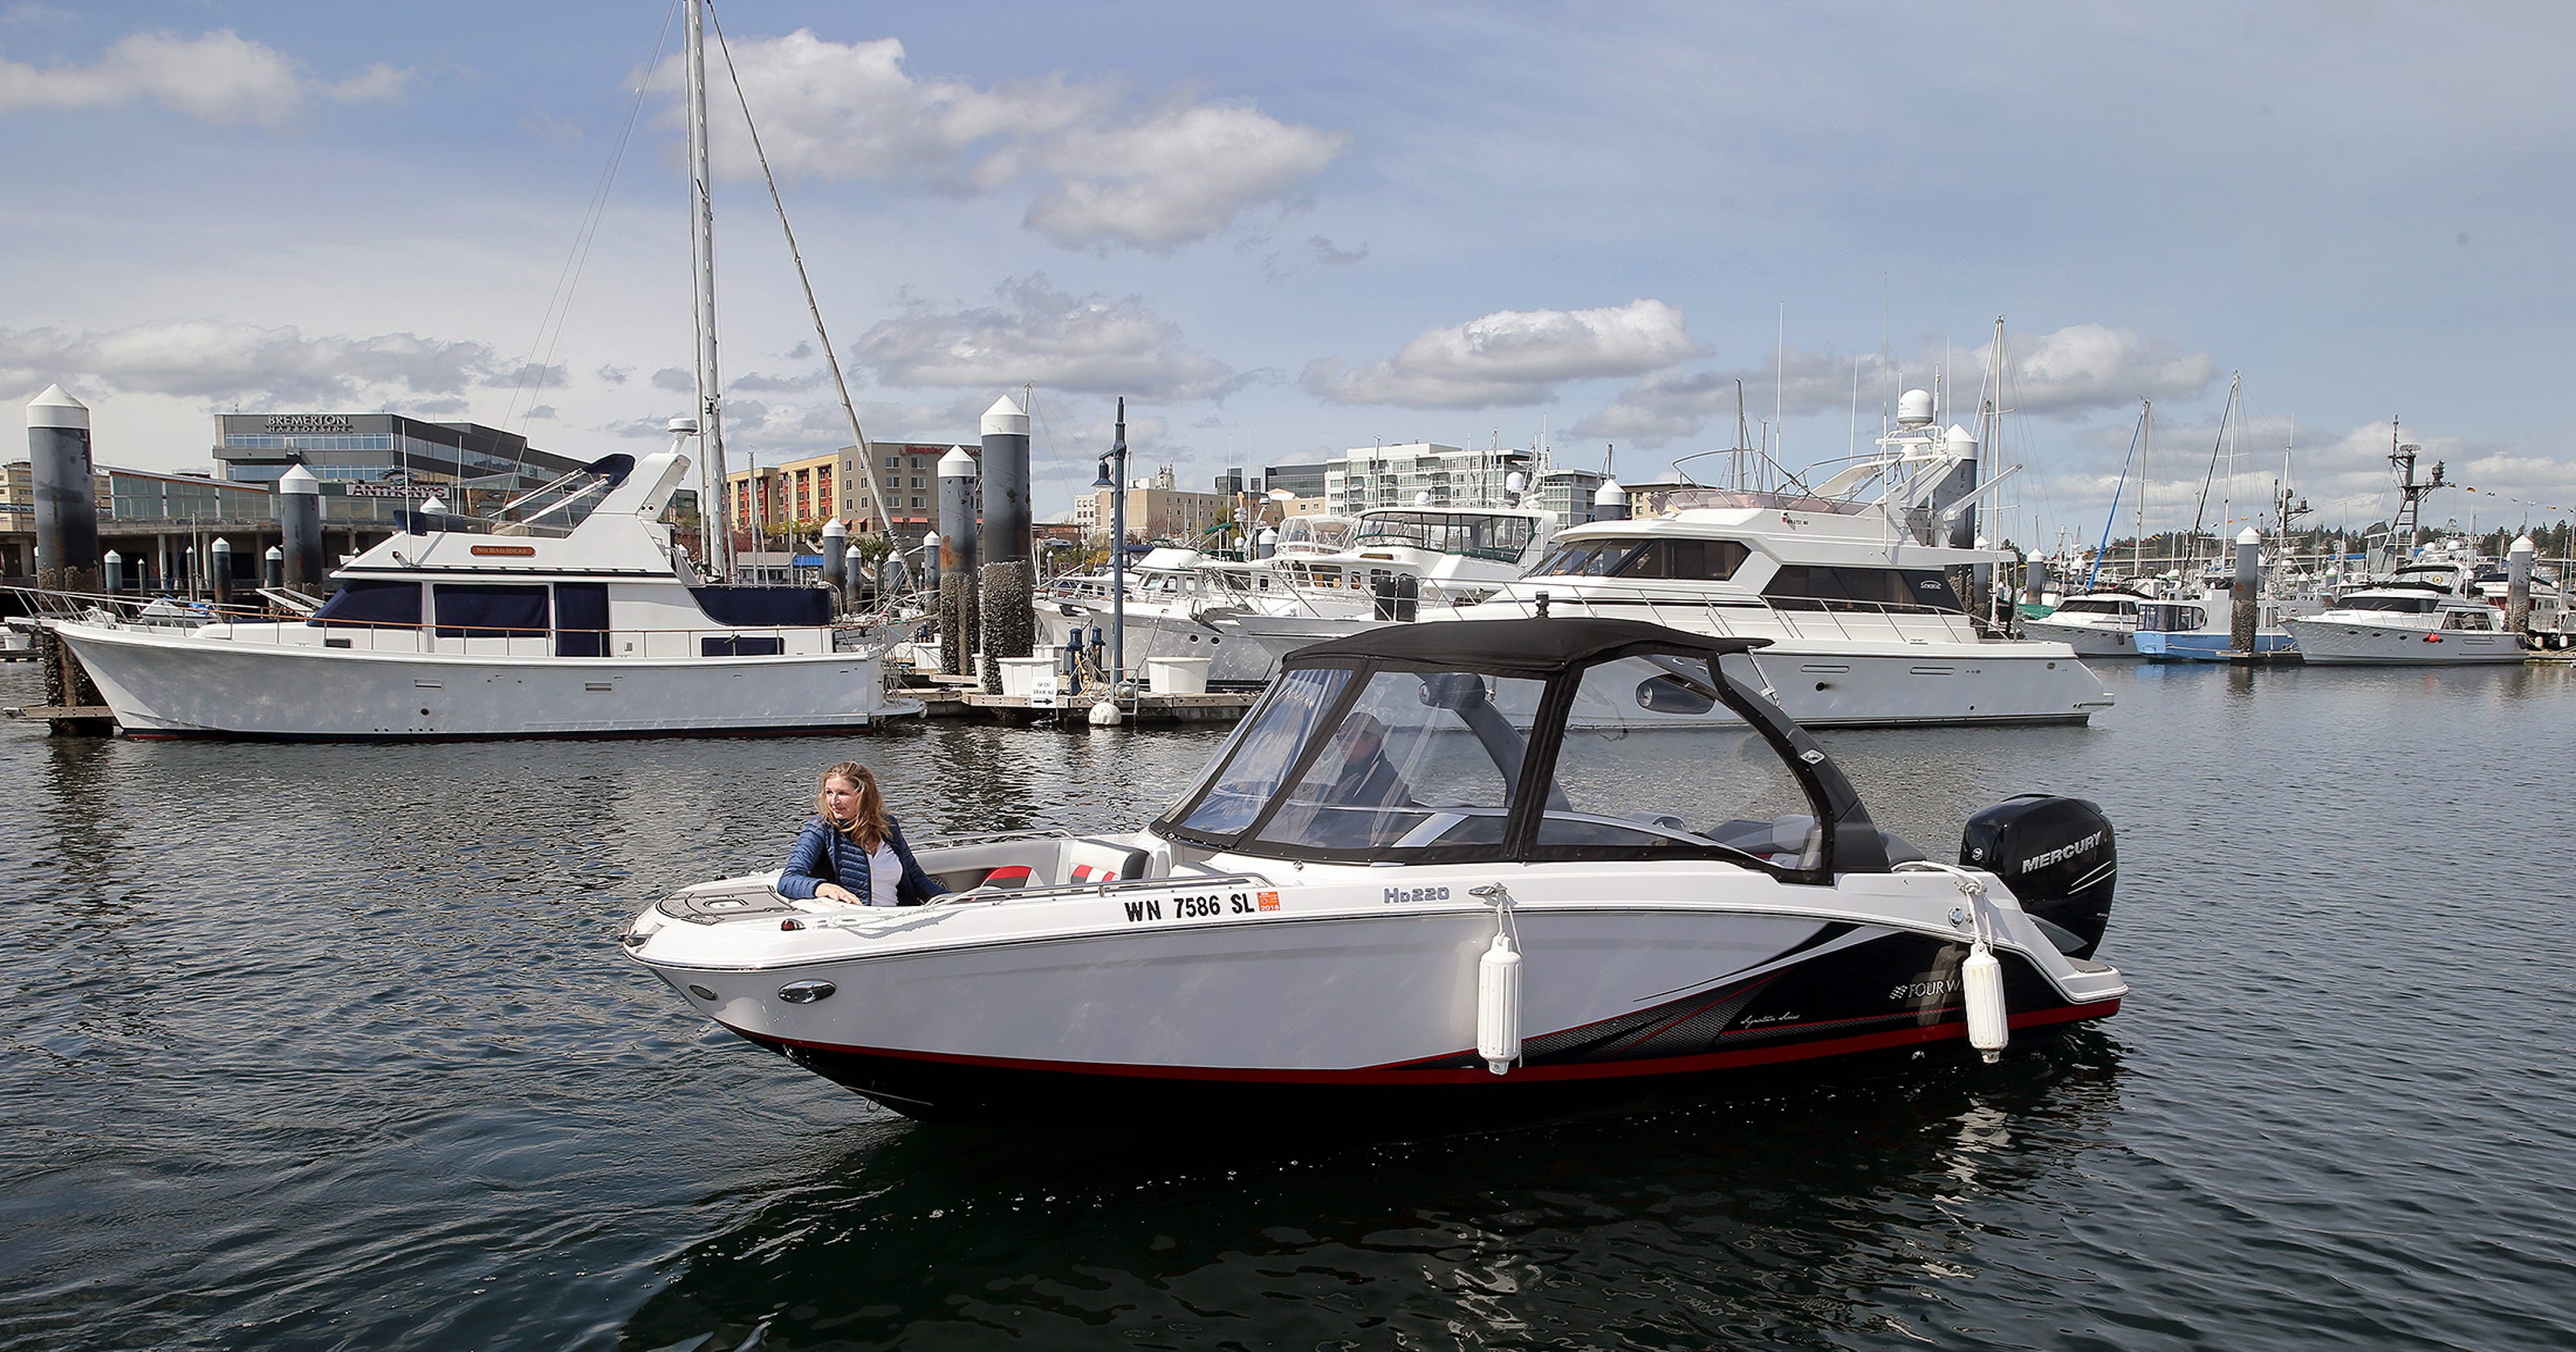 Bremerton boat share offers boating without the hassle